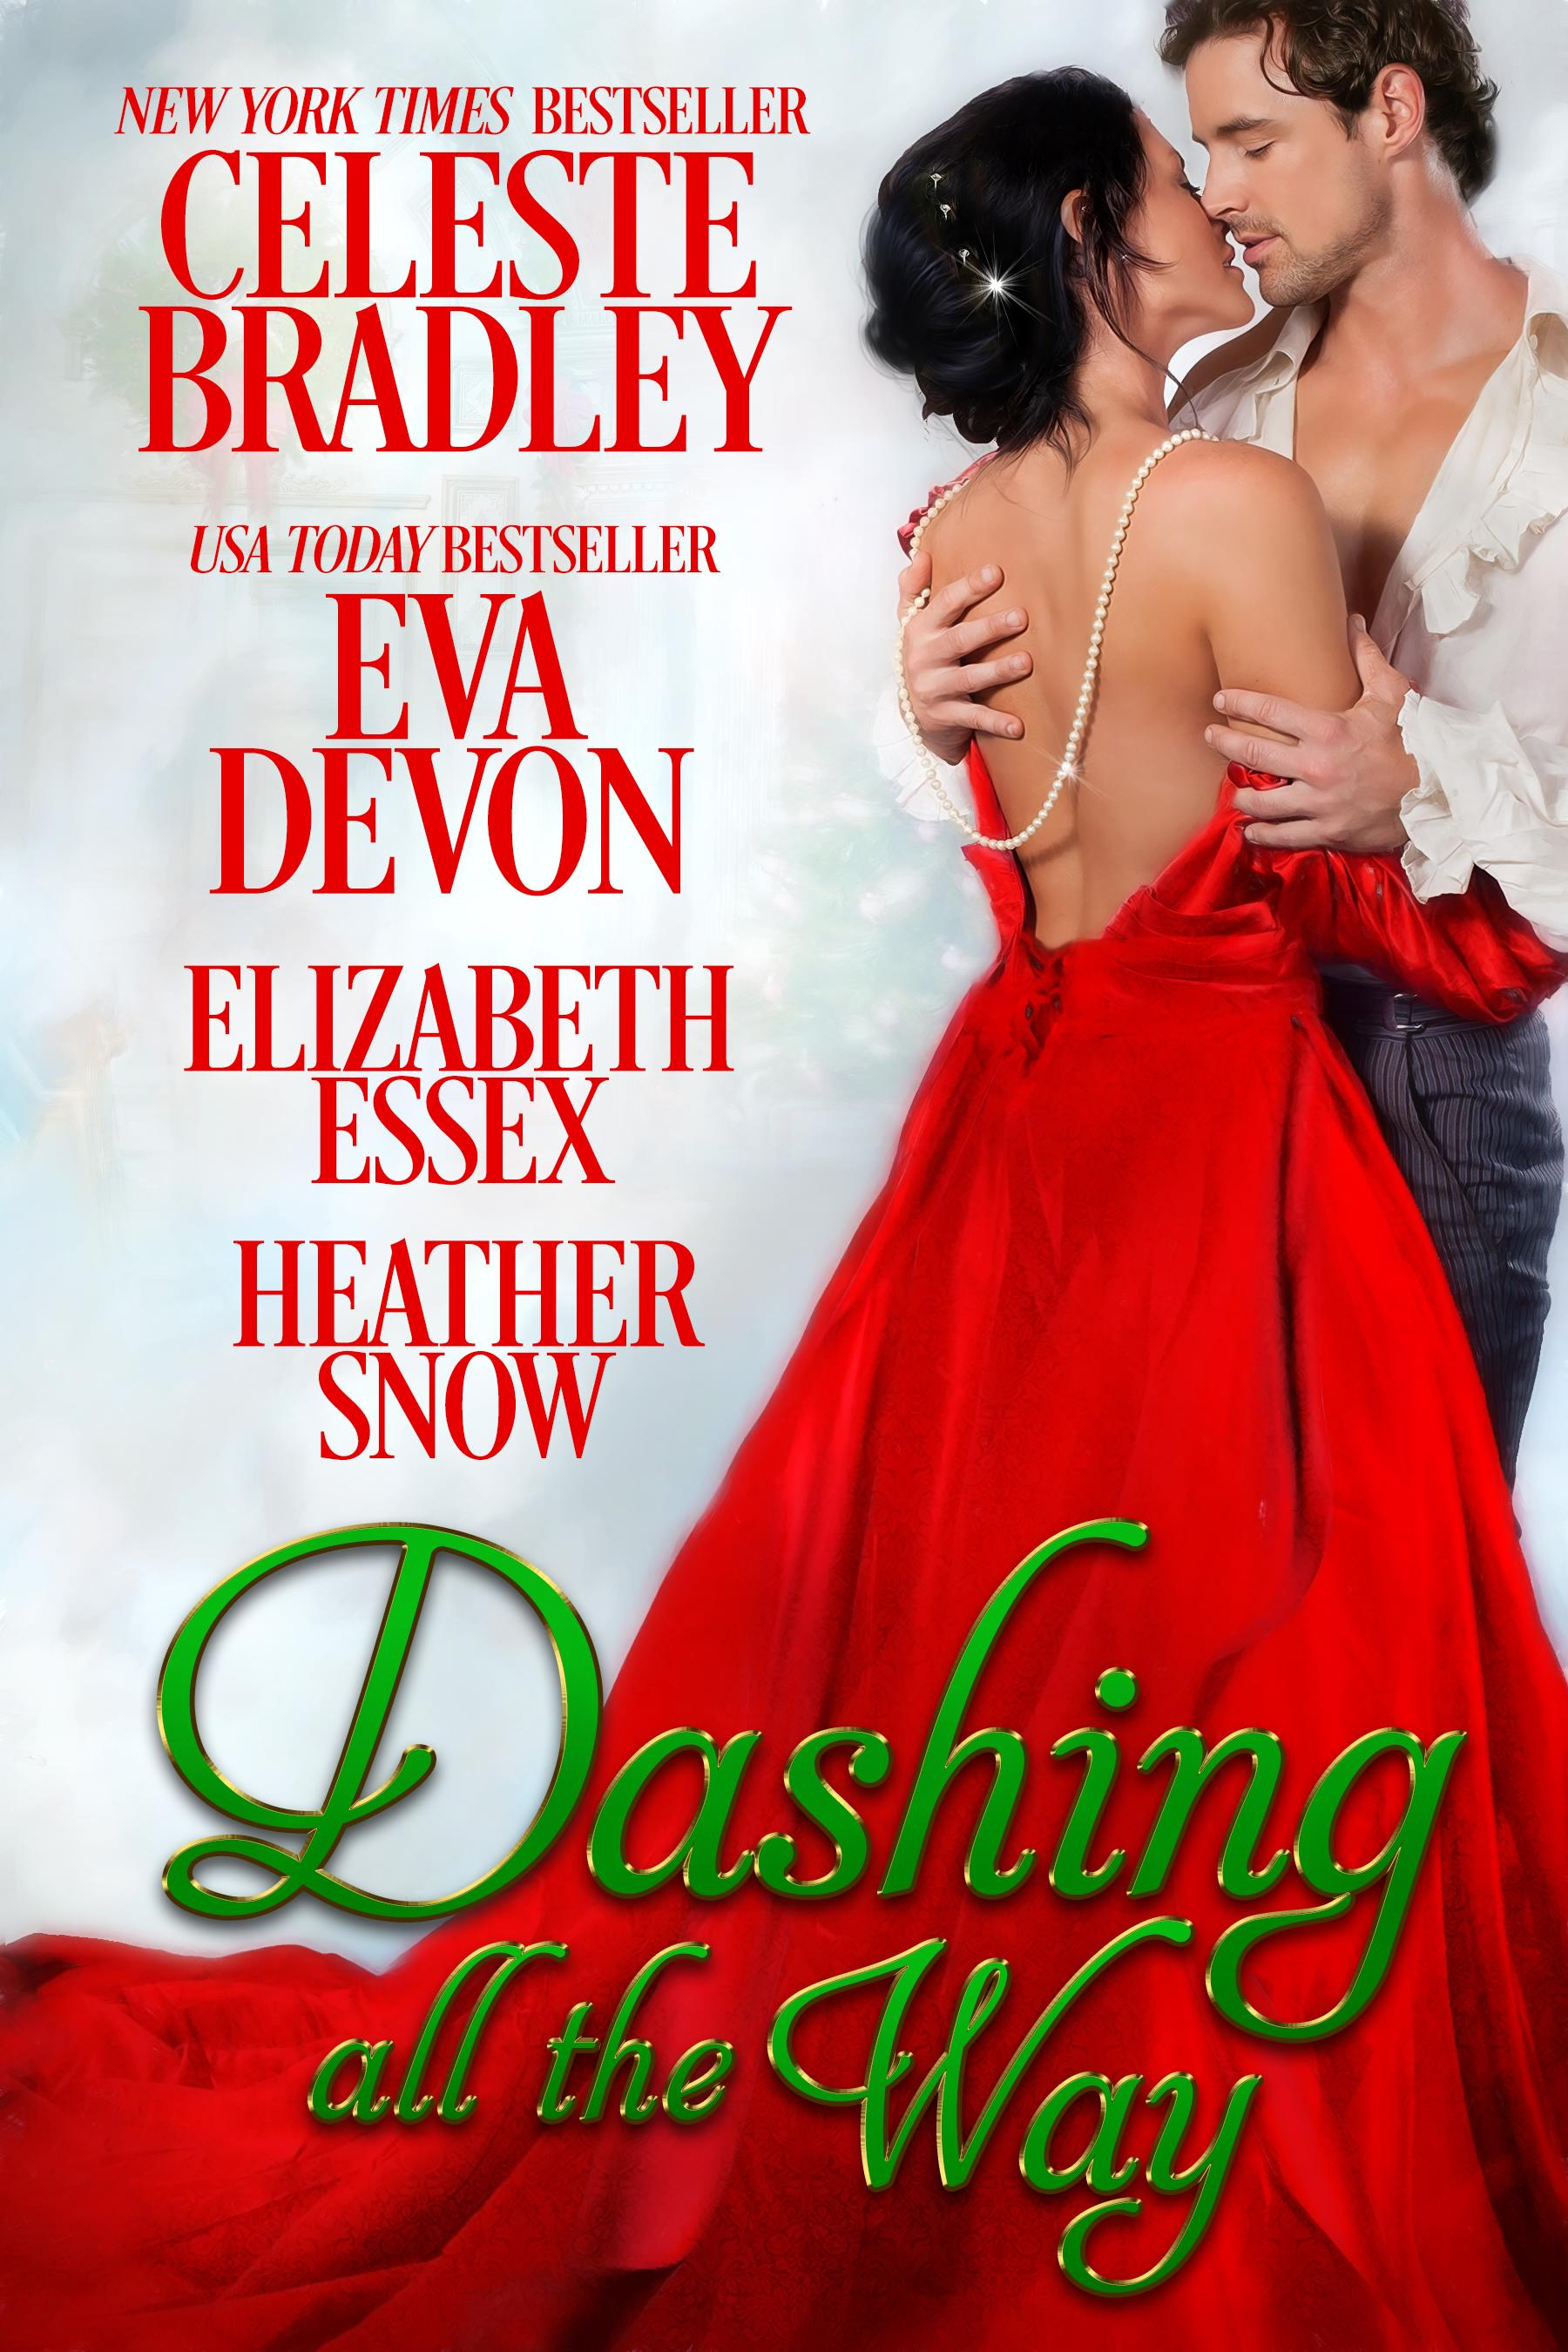 Dashing all the way cover image